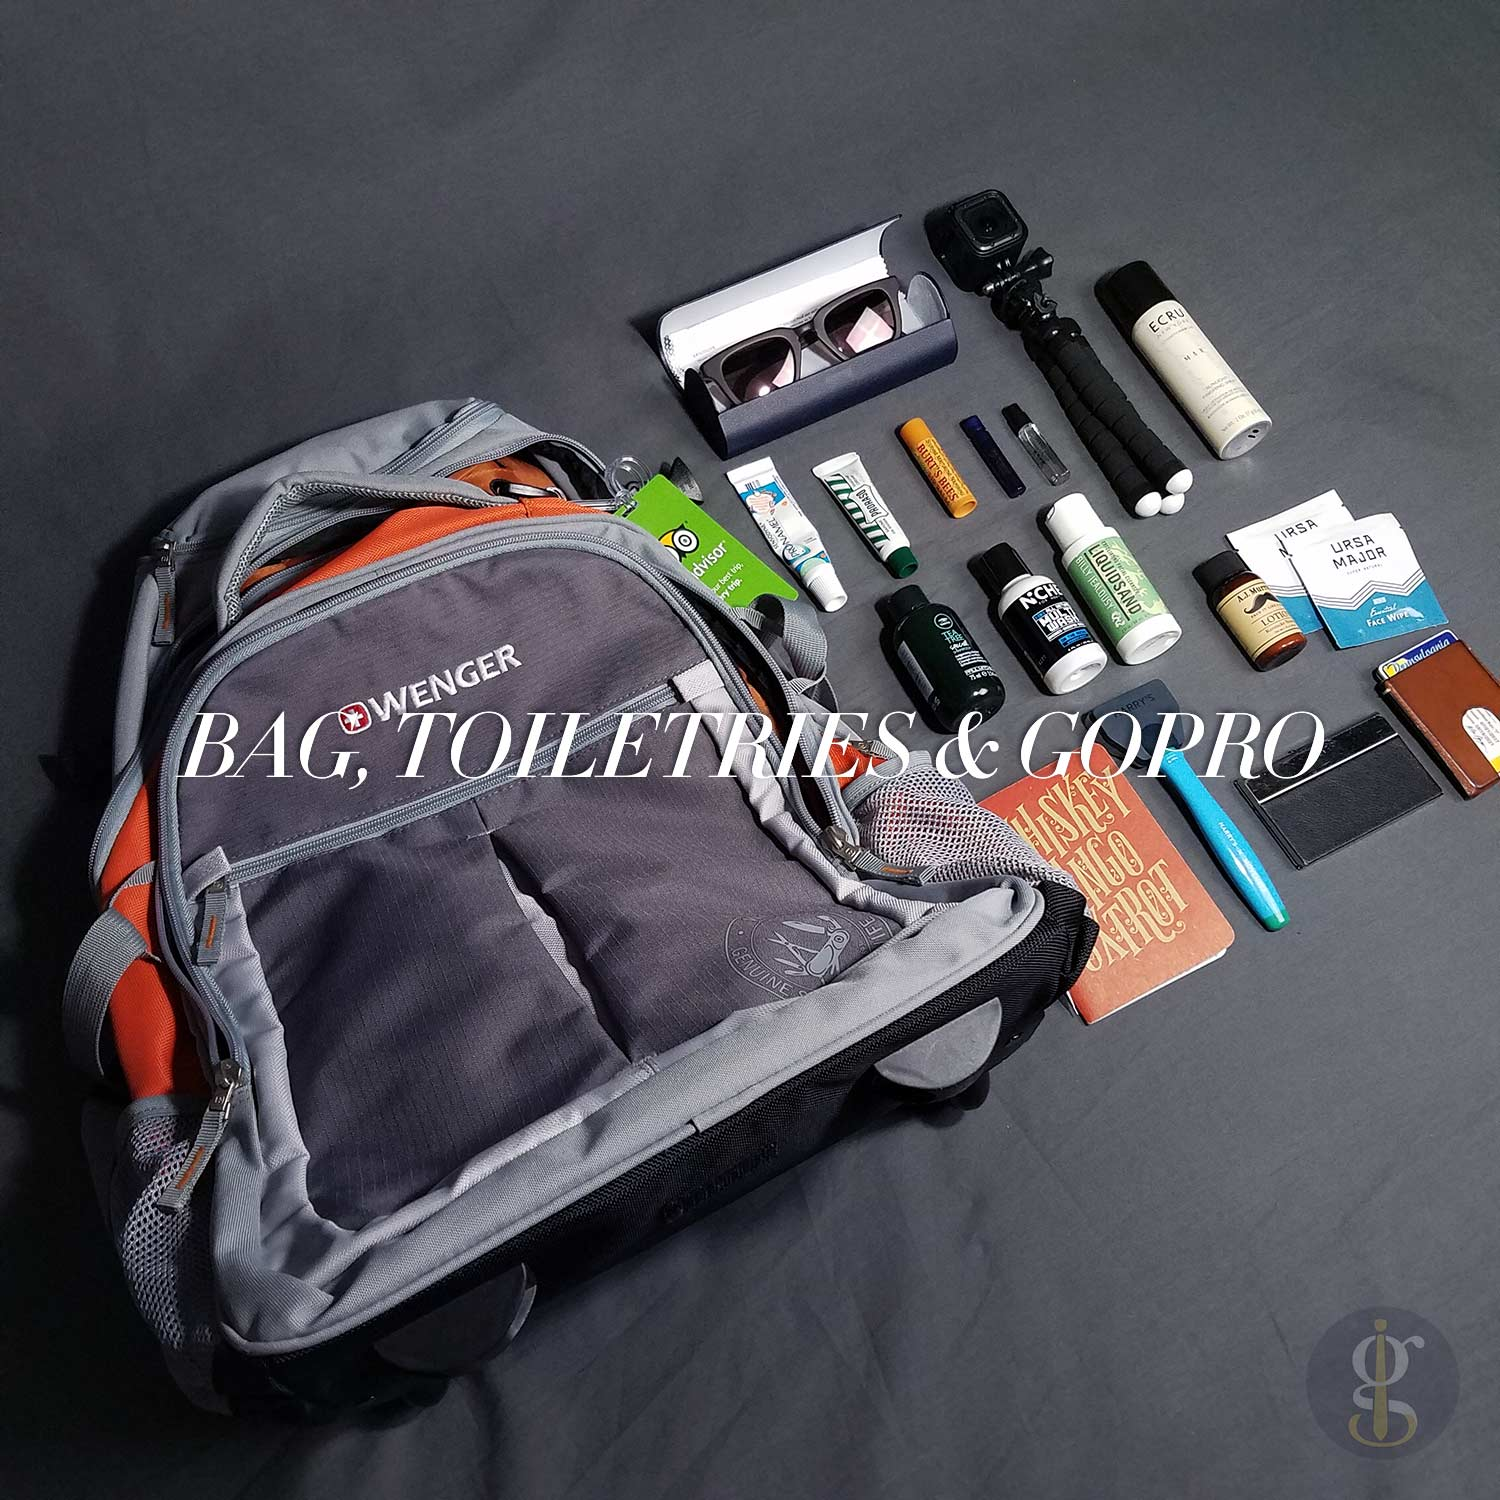 Bag With Toiletries And GoPro | GENTLEMAN WITHIN